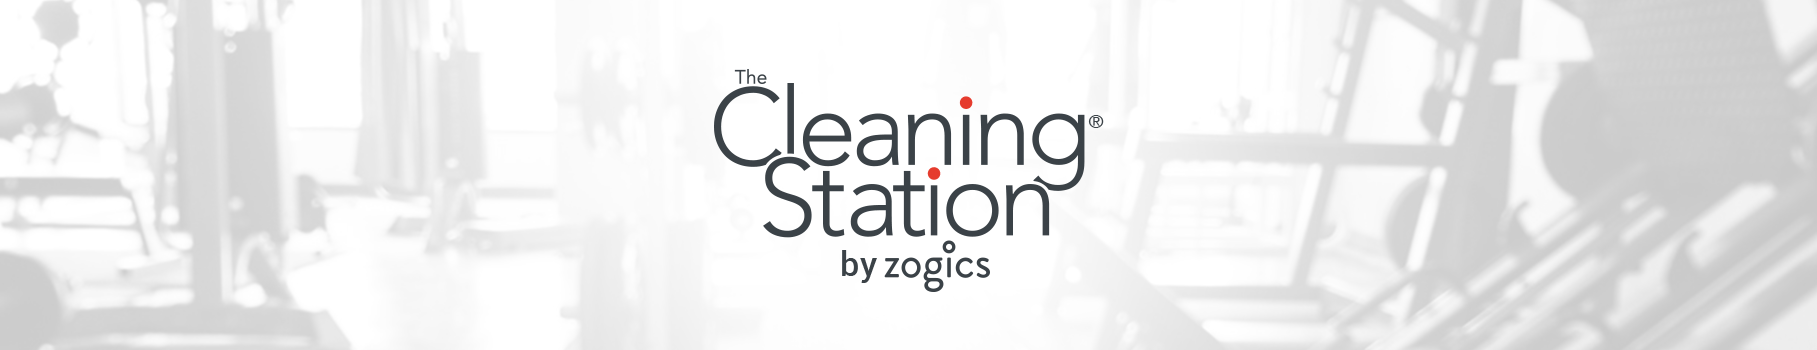 The Cleaning Station by Zogics